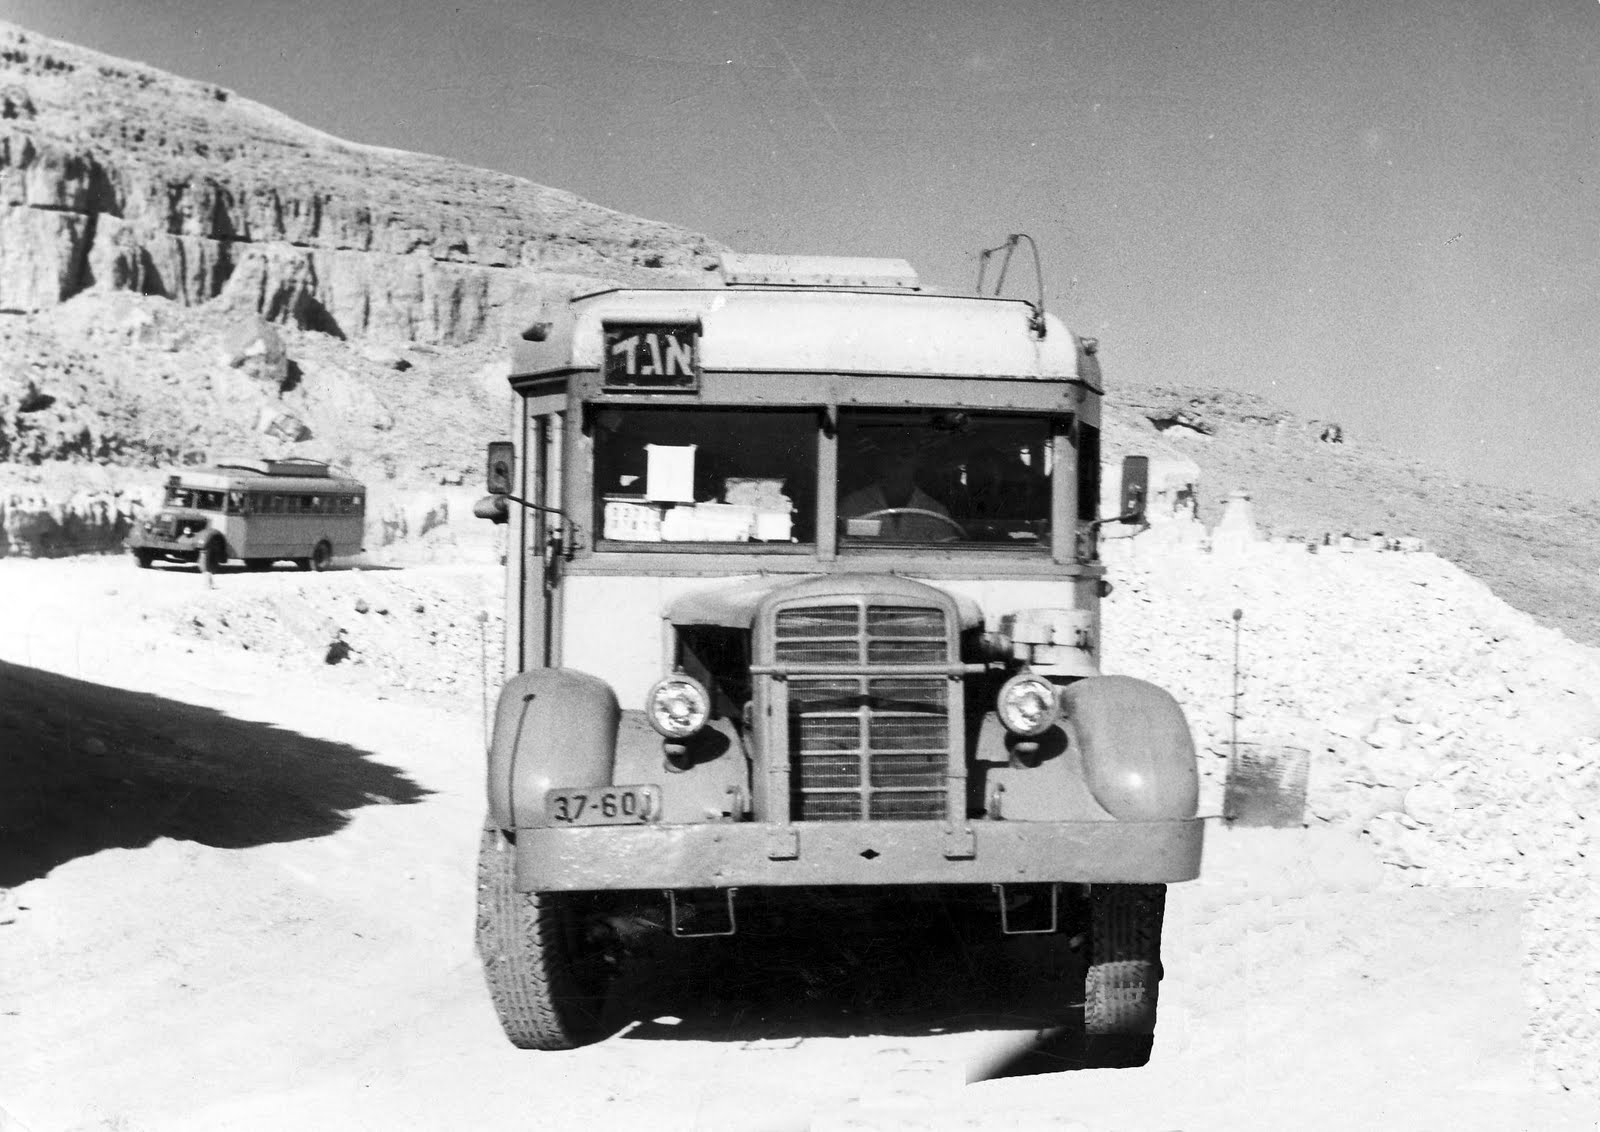 Denning double decker for sale - From The Advanced To The Archaic Even Though The Mack Was Produced Later Somewhere Between Tel Aviv And Eilat Israel Pic From A Goren S Blog